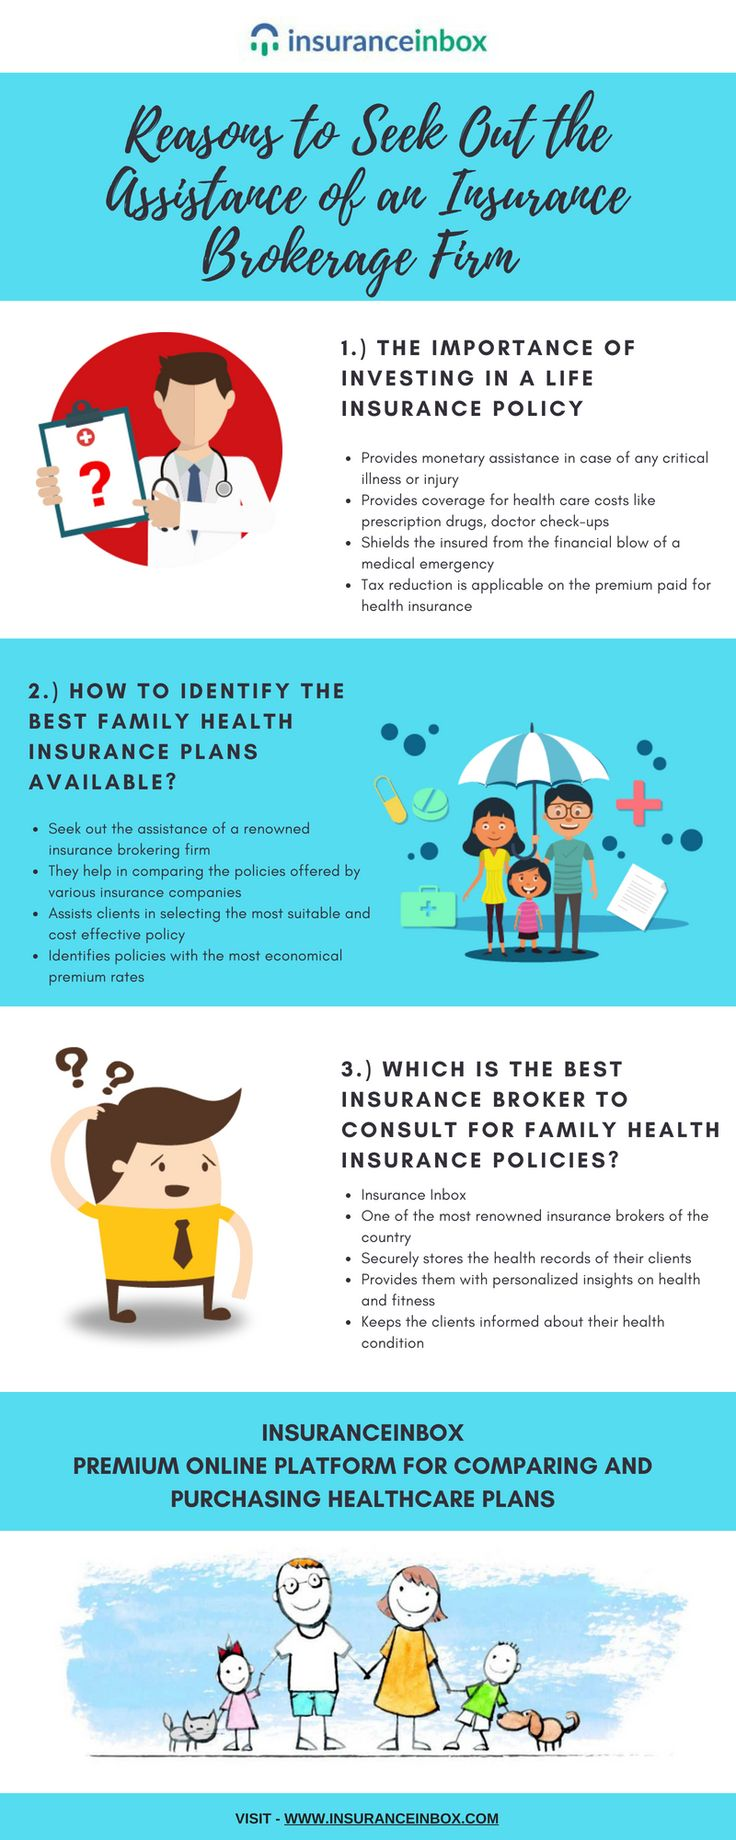 Reasons to Seek Out the Assistance of an Insurance